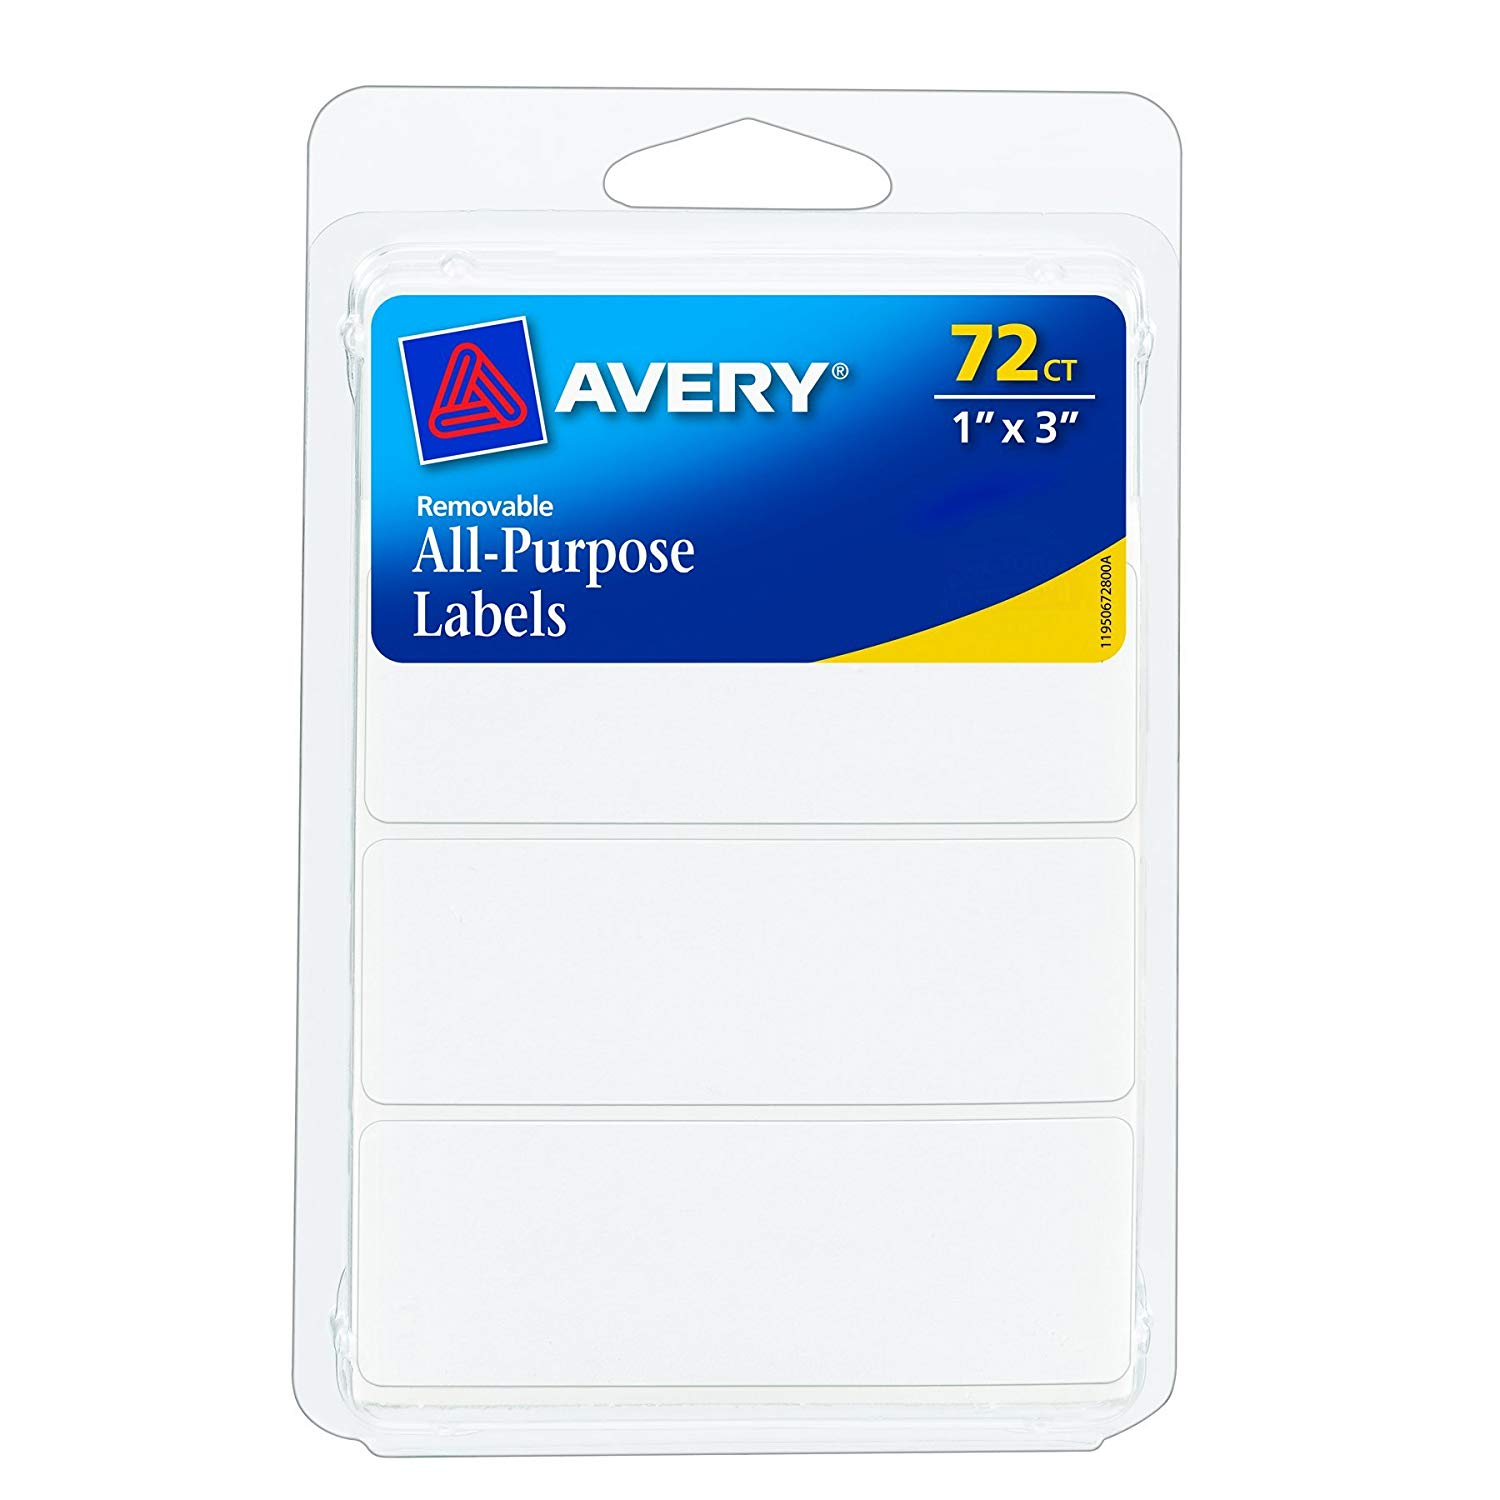 Avery-Labeling-stickers